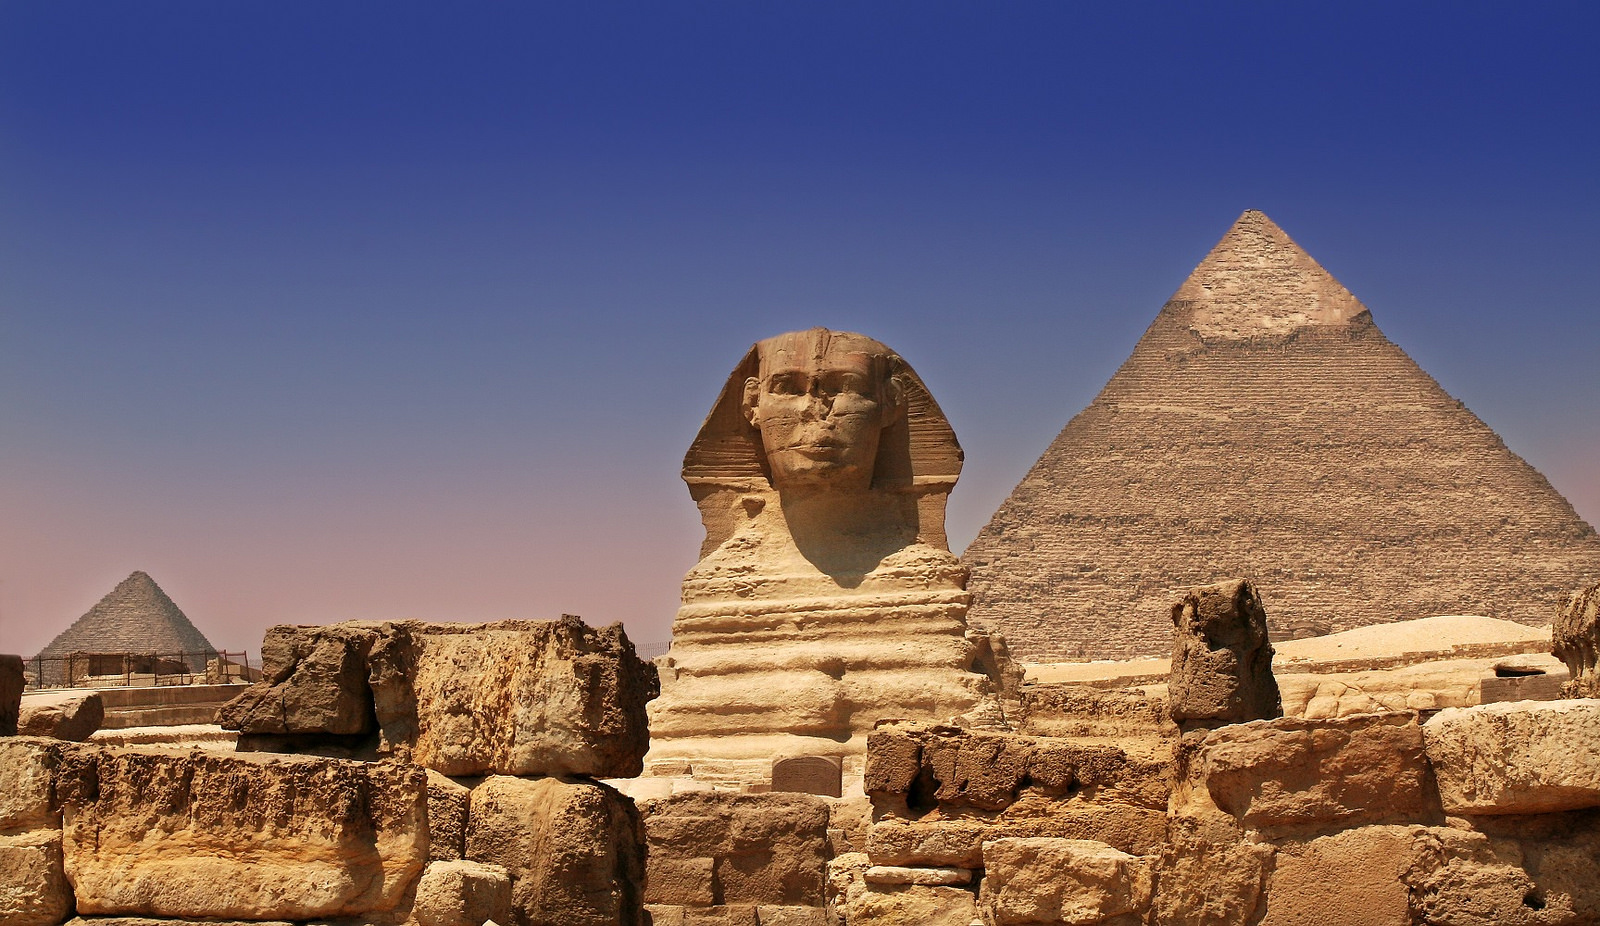 """Giza Pyramids & Sphinx - Egypt"" by Sam Valadi via Flickr Creative Commons"